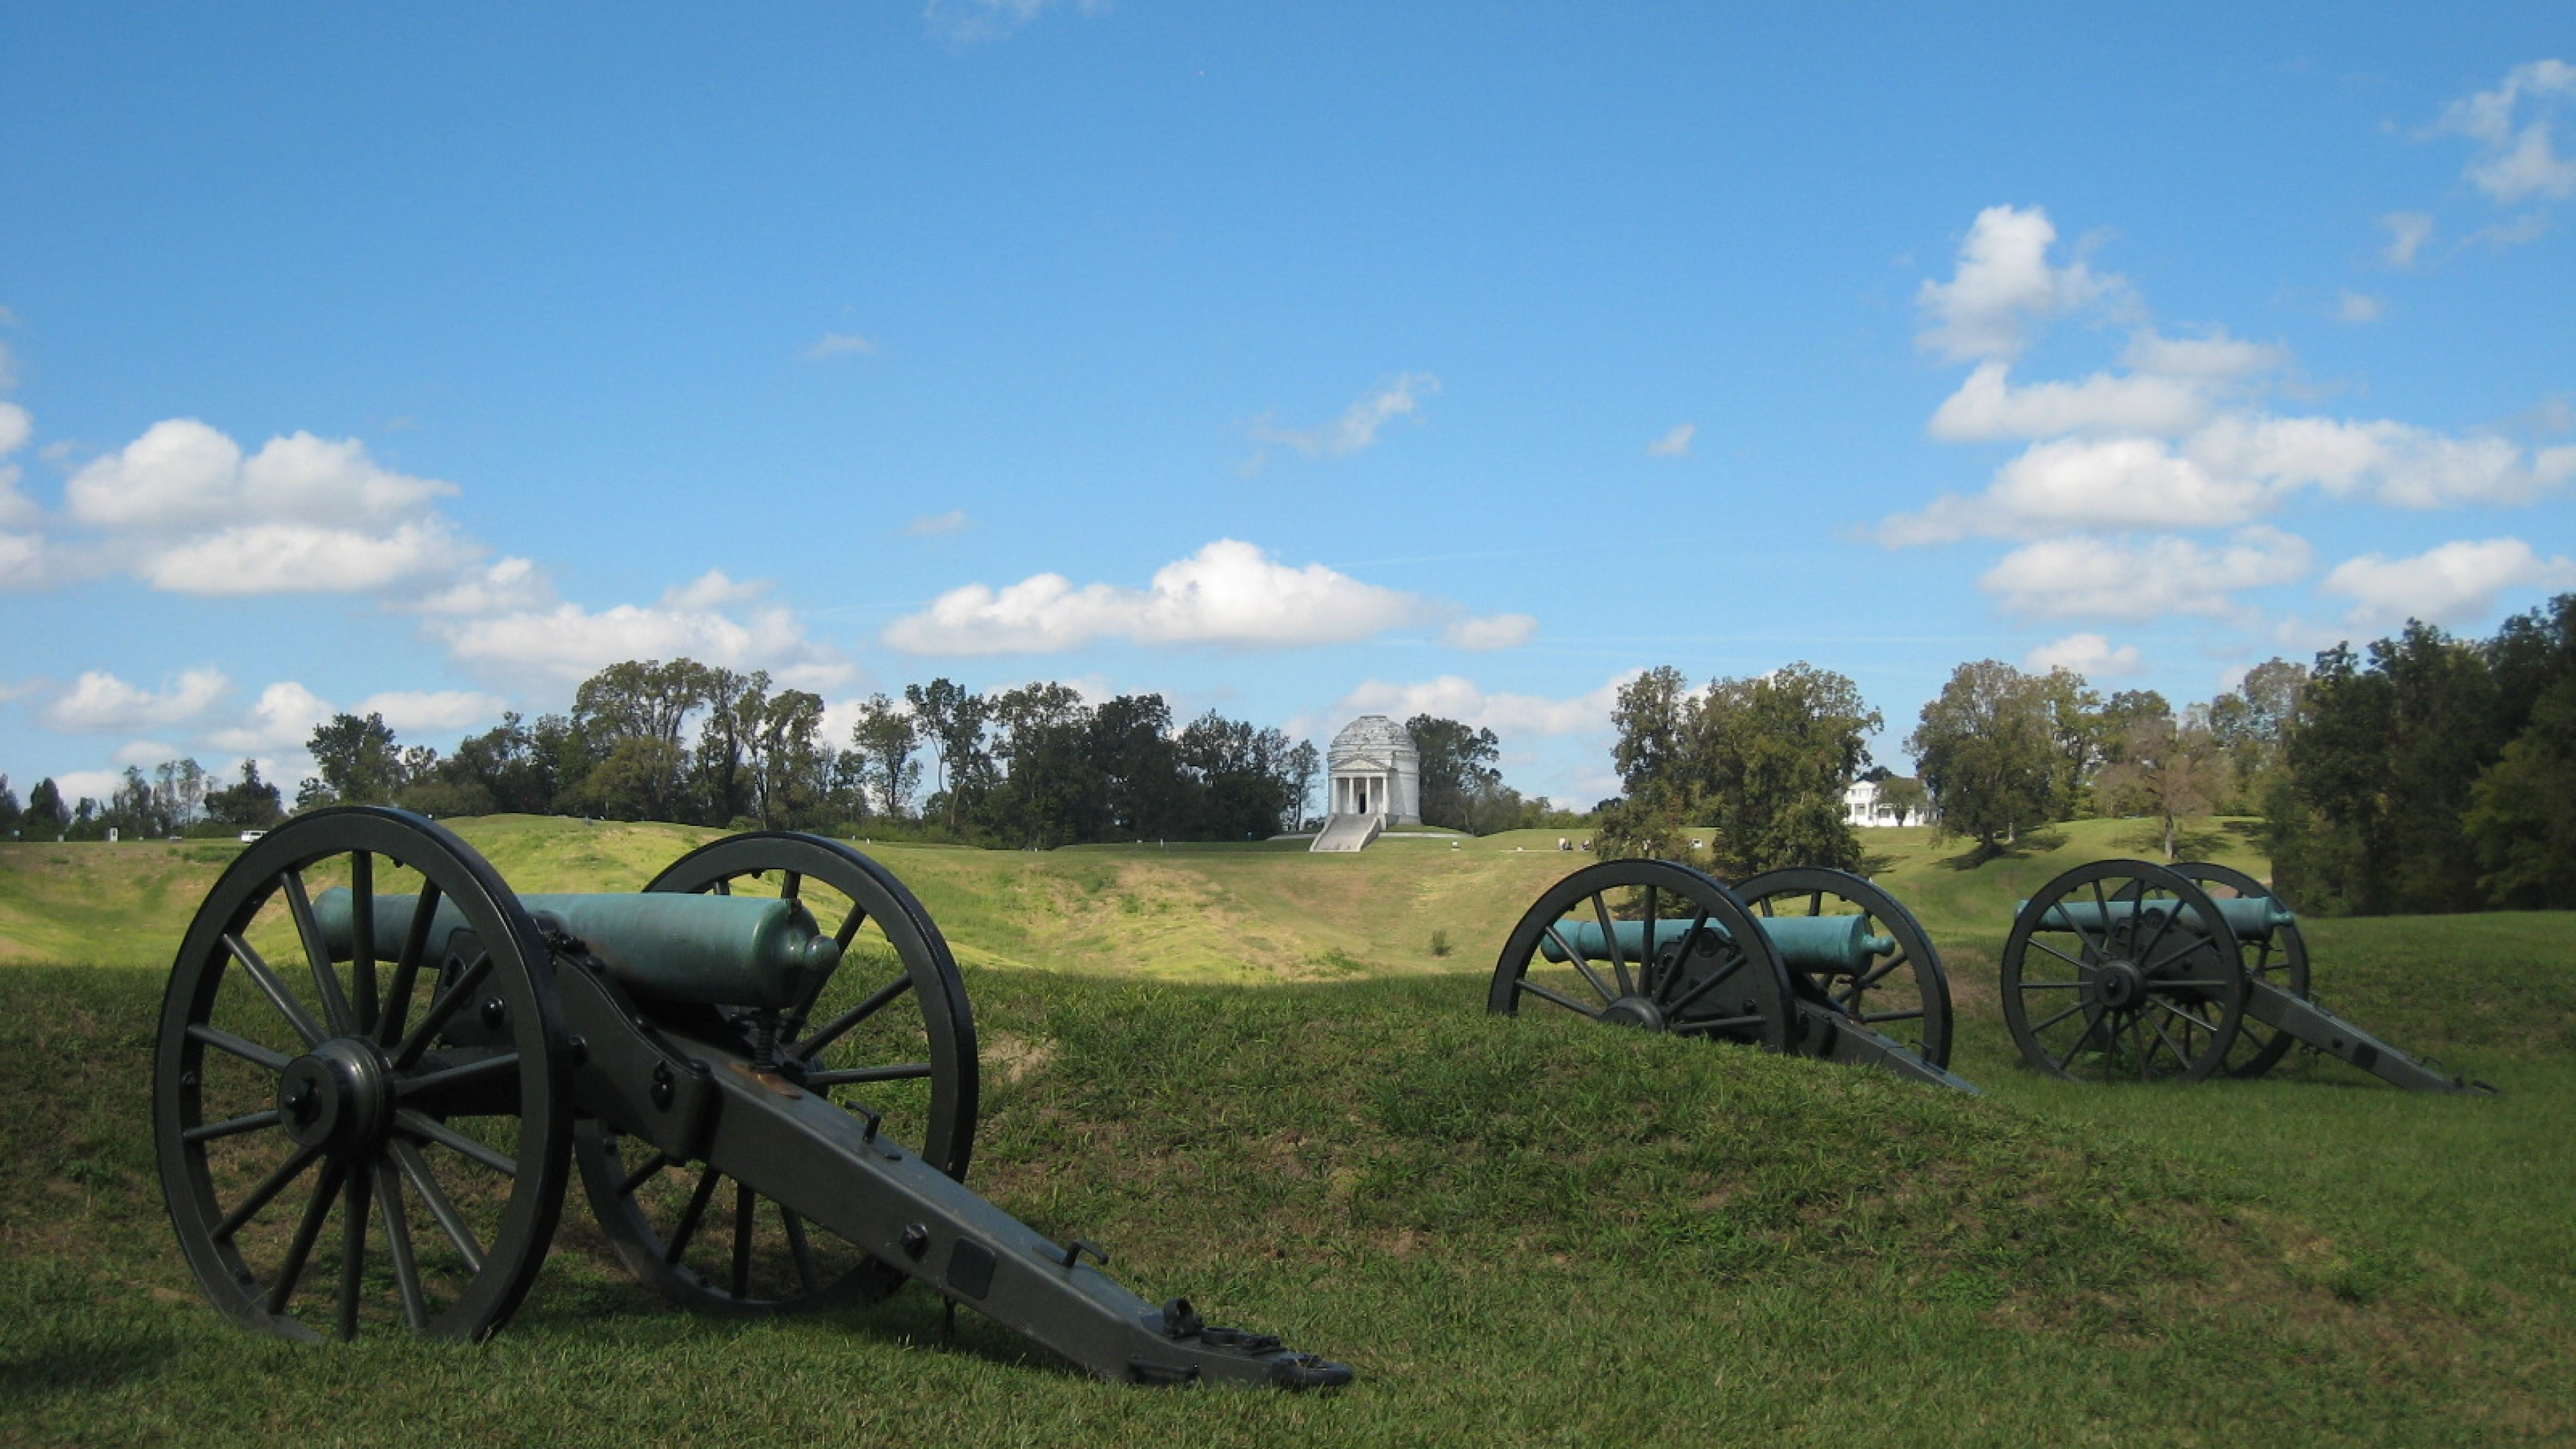 Three cannons in the green grass with a white roman-styled building in the horizon at Vicksburg National Military Park